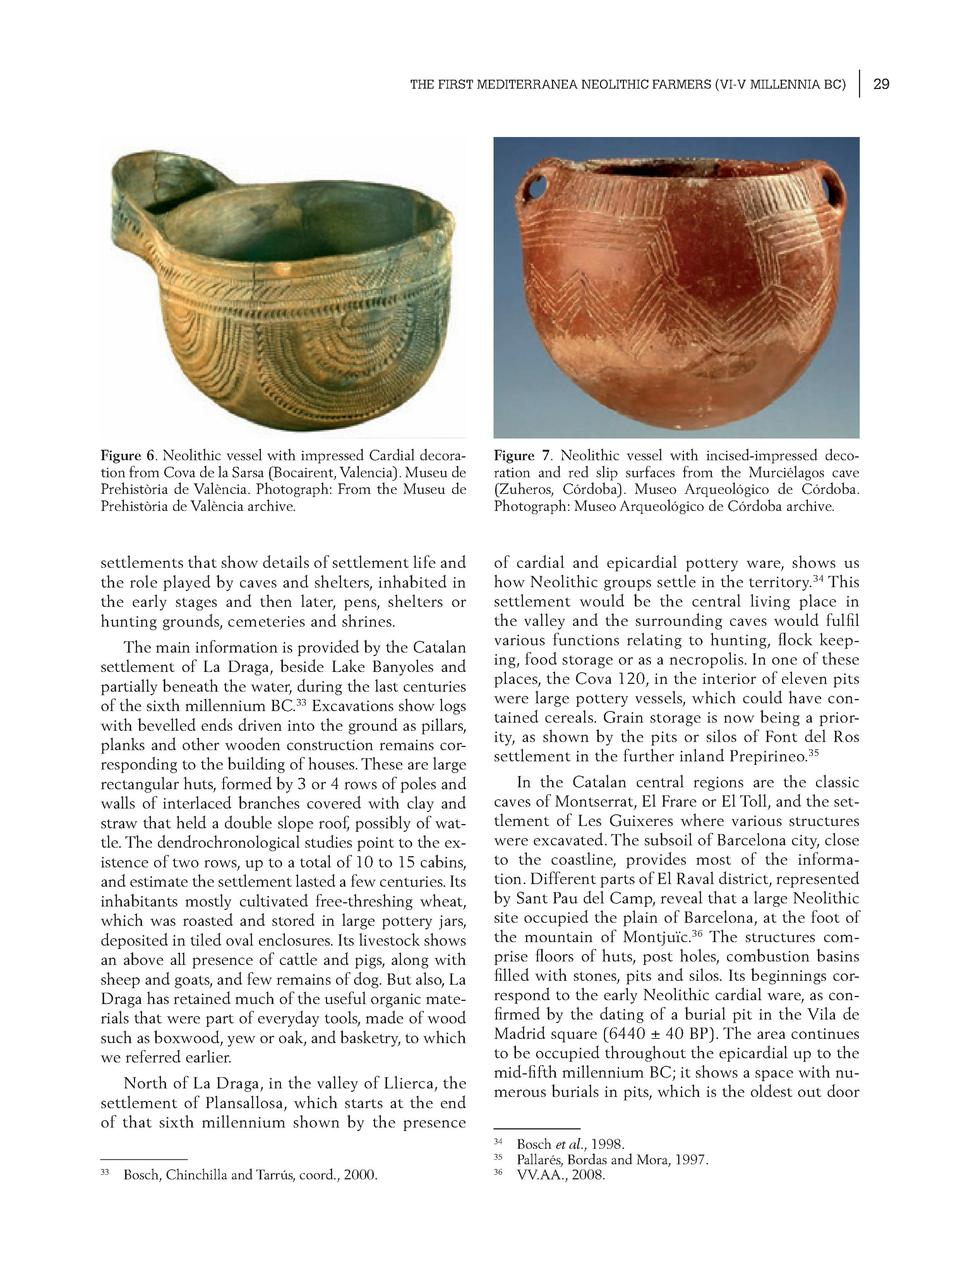 THE FIRST MEDITERRANEA NEOLITHIC FARMERS  VI-V MILLENNIA BC   Figure 6. Neolithic vessel with impressed Cardial decoration...